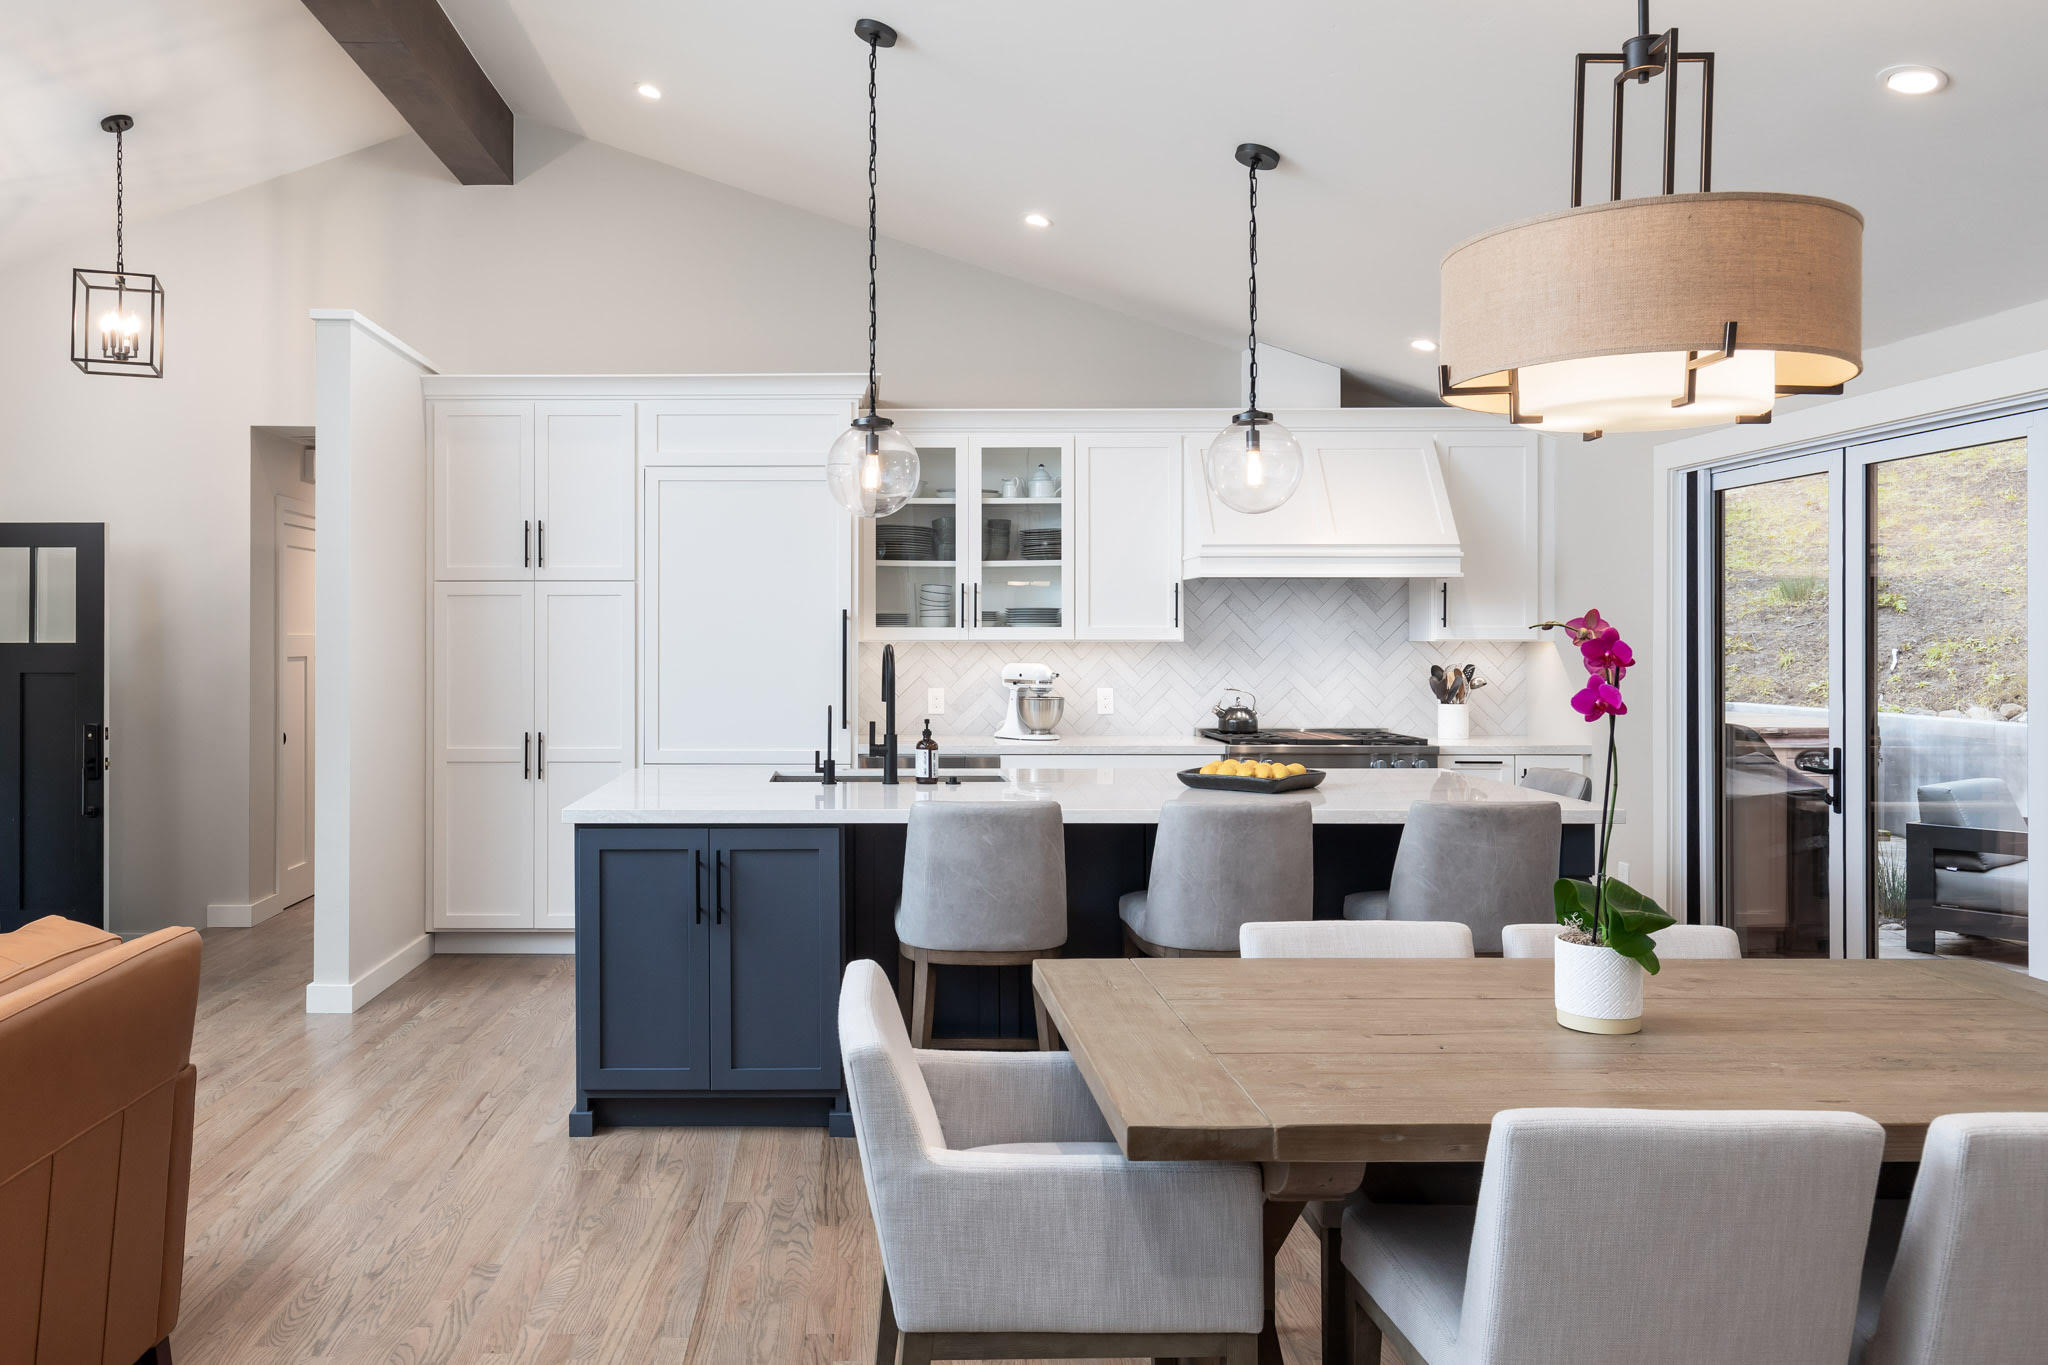 Kitchen with dining room table with grey seats